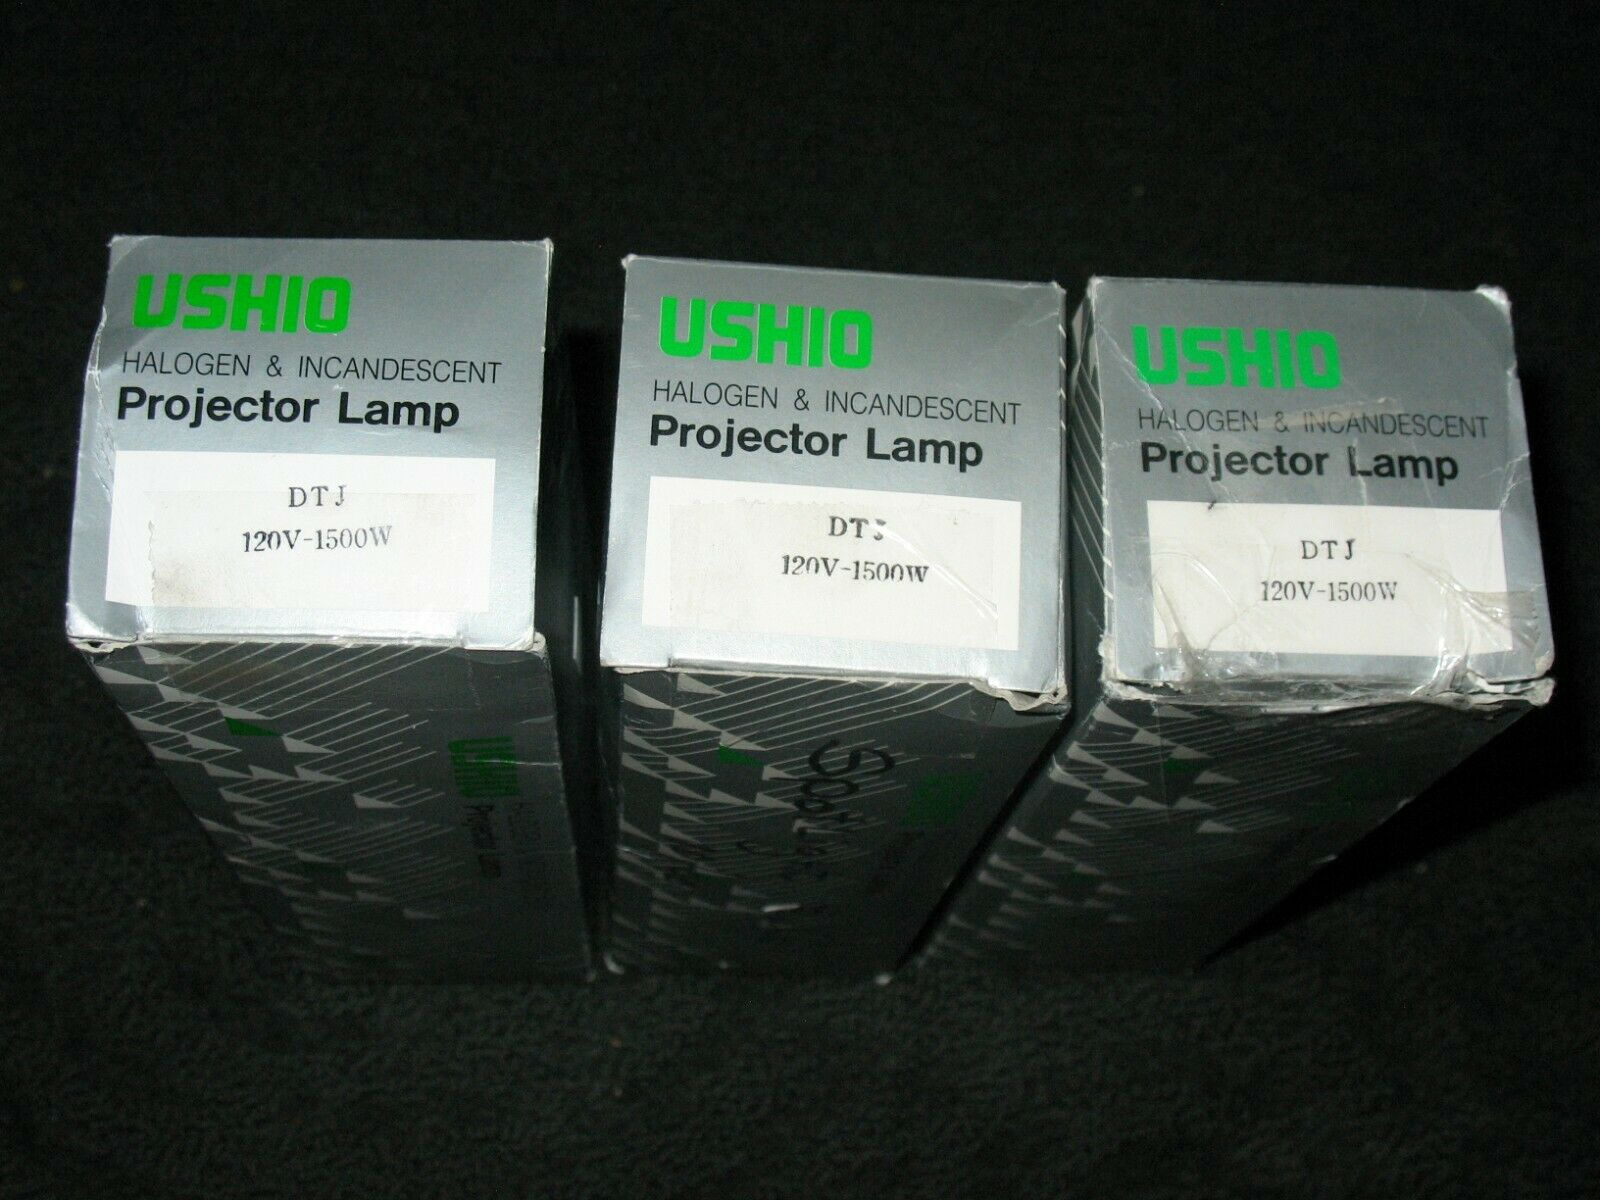 3 - USHIO DTJ Spotlight Bulb Lamp 120V 1500W Made in Japan Projector, Halogen Ushio DTJ - фотография #6